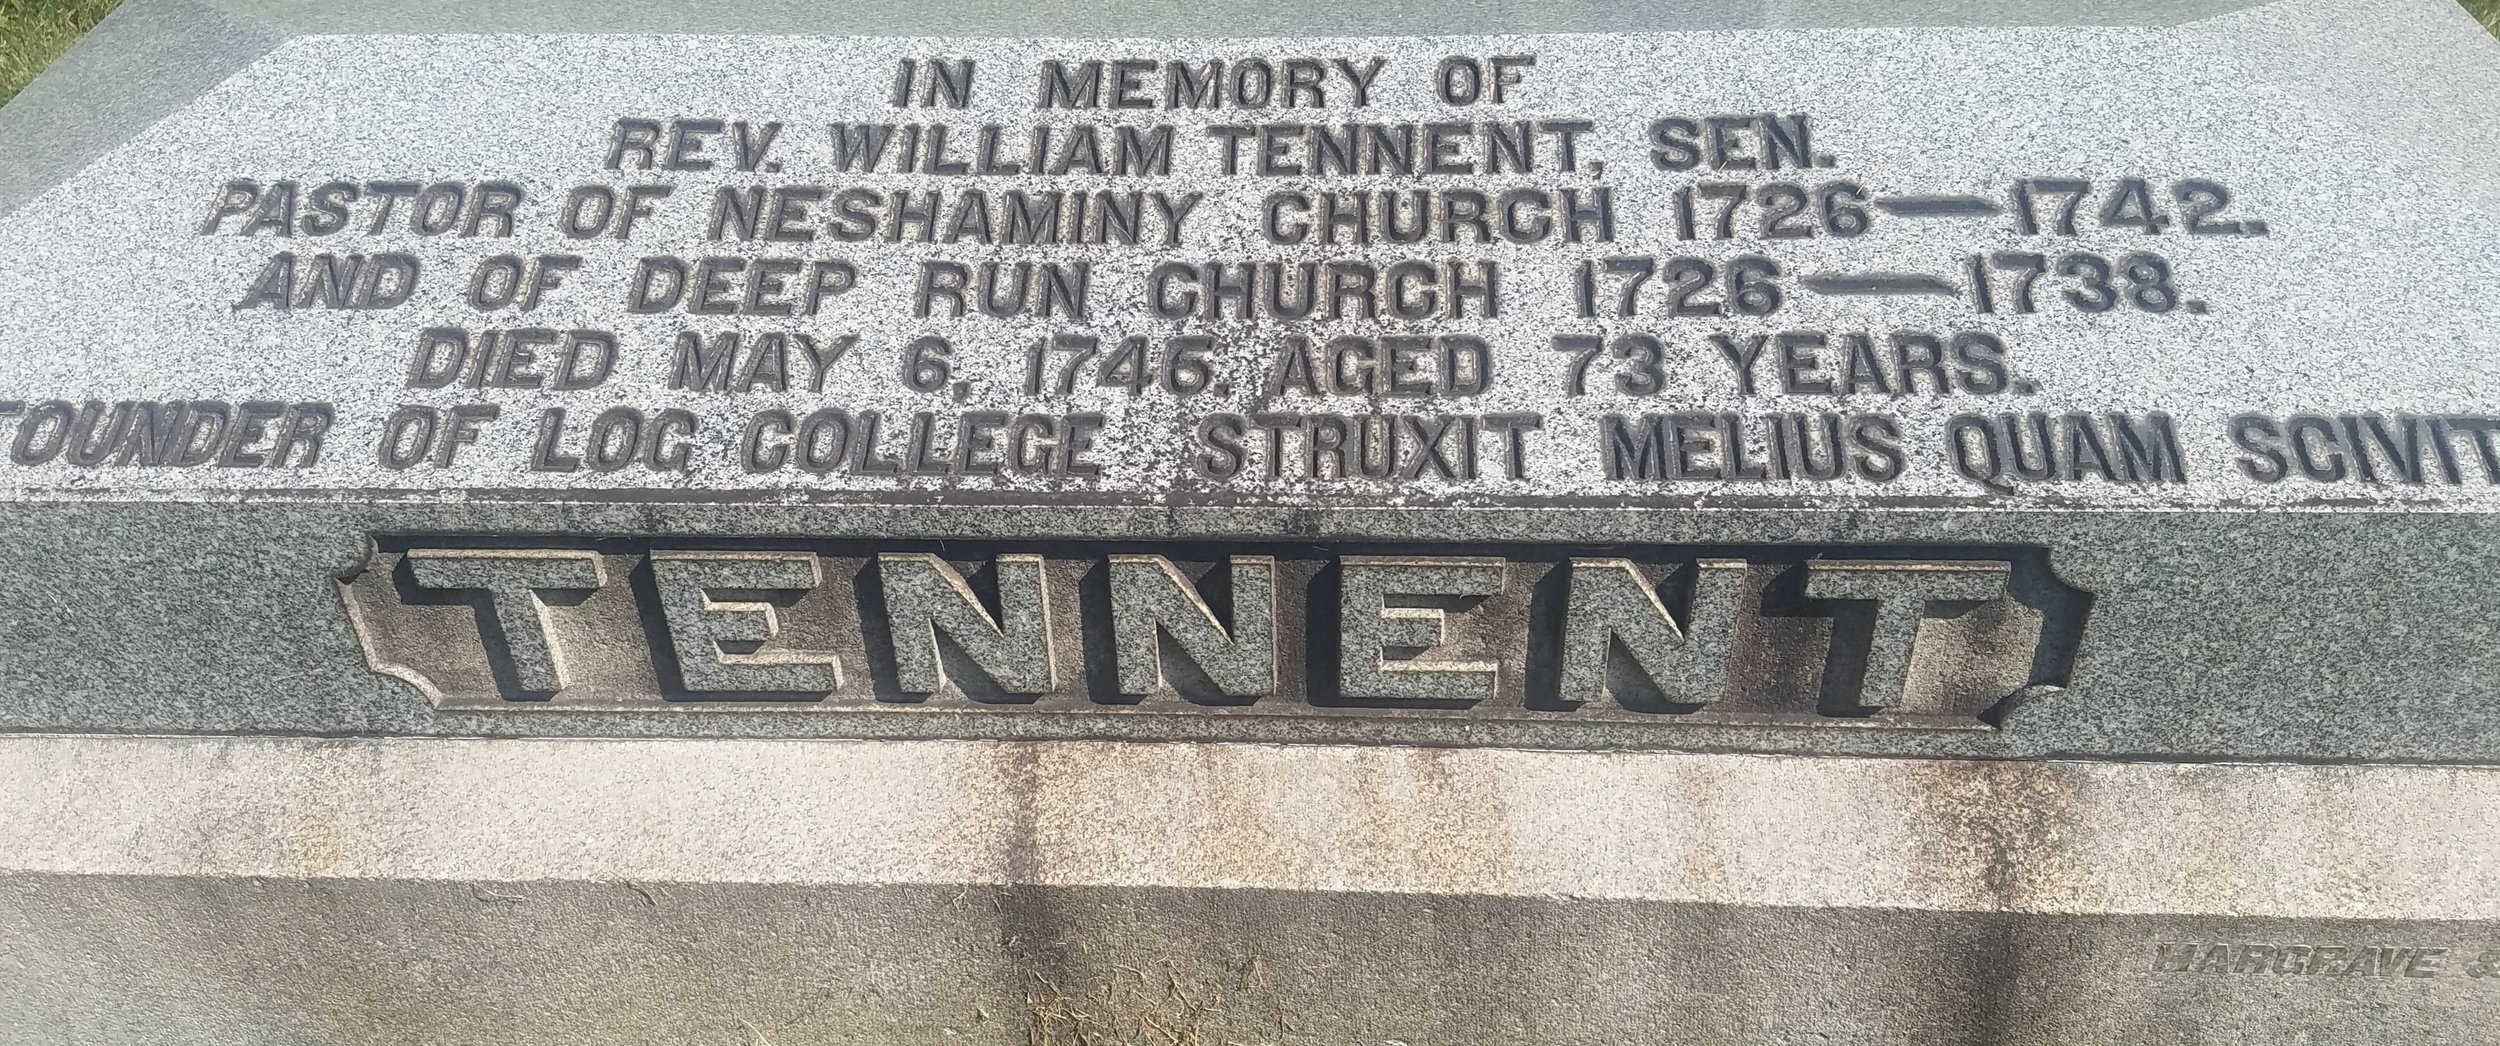 The grave of William Tennent, Sr. (photo credit: R. Andrew Myers).